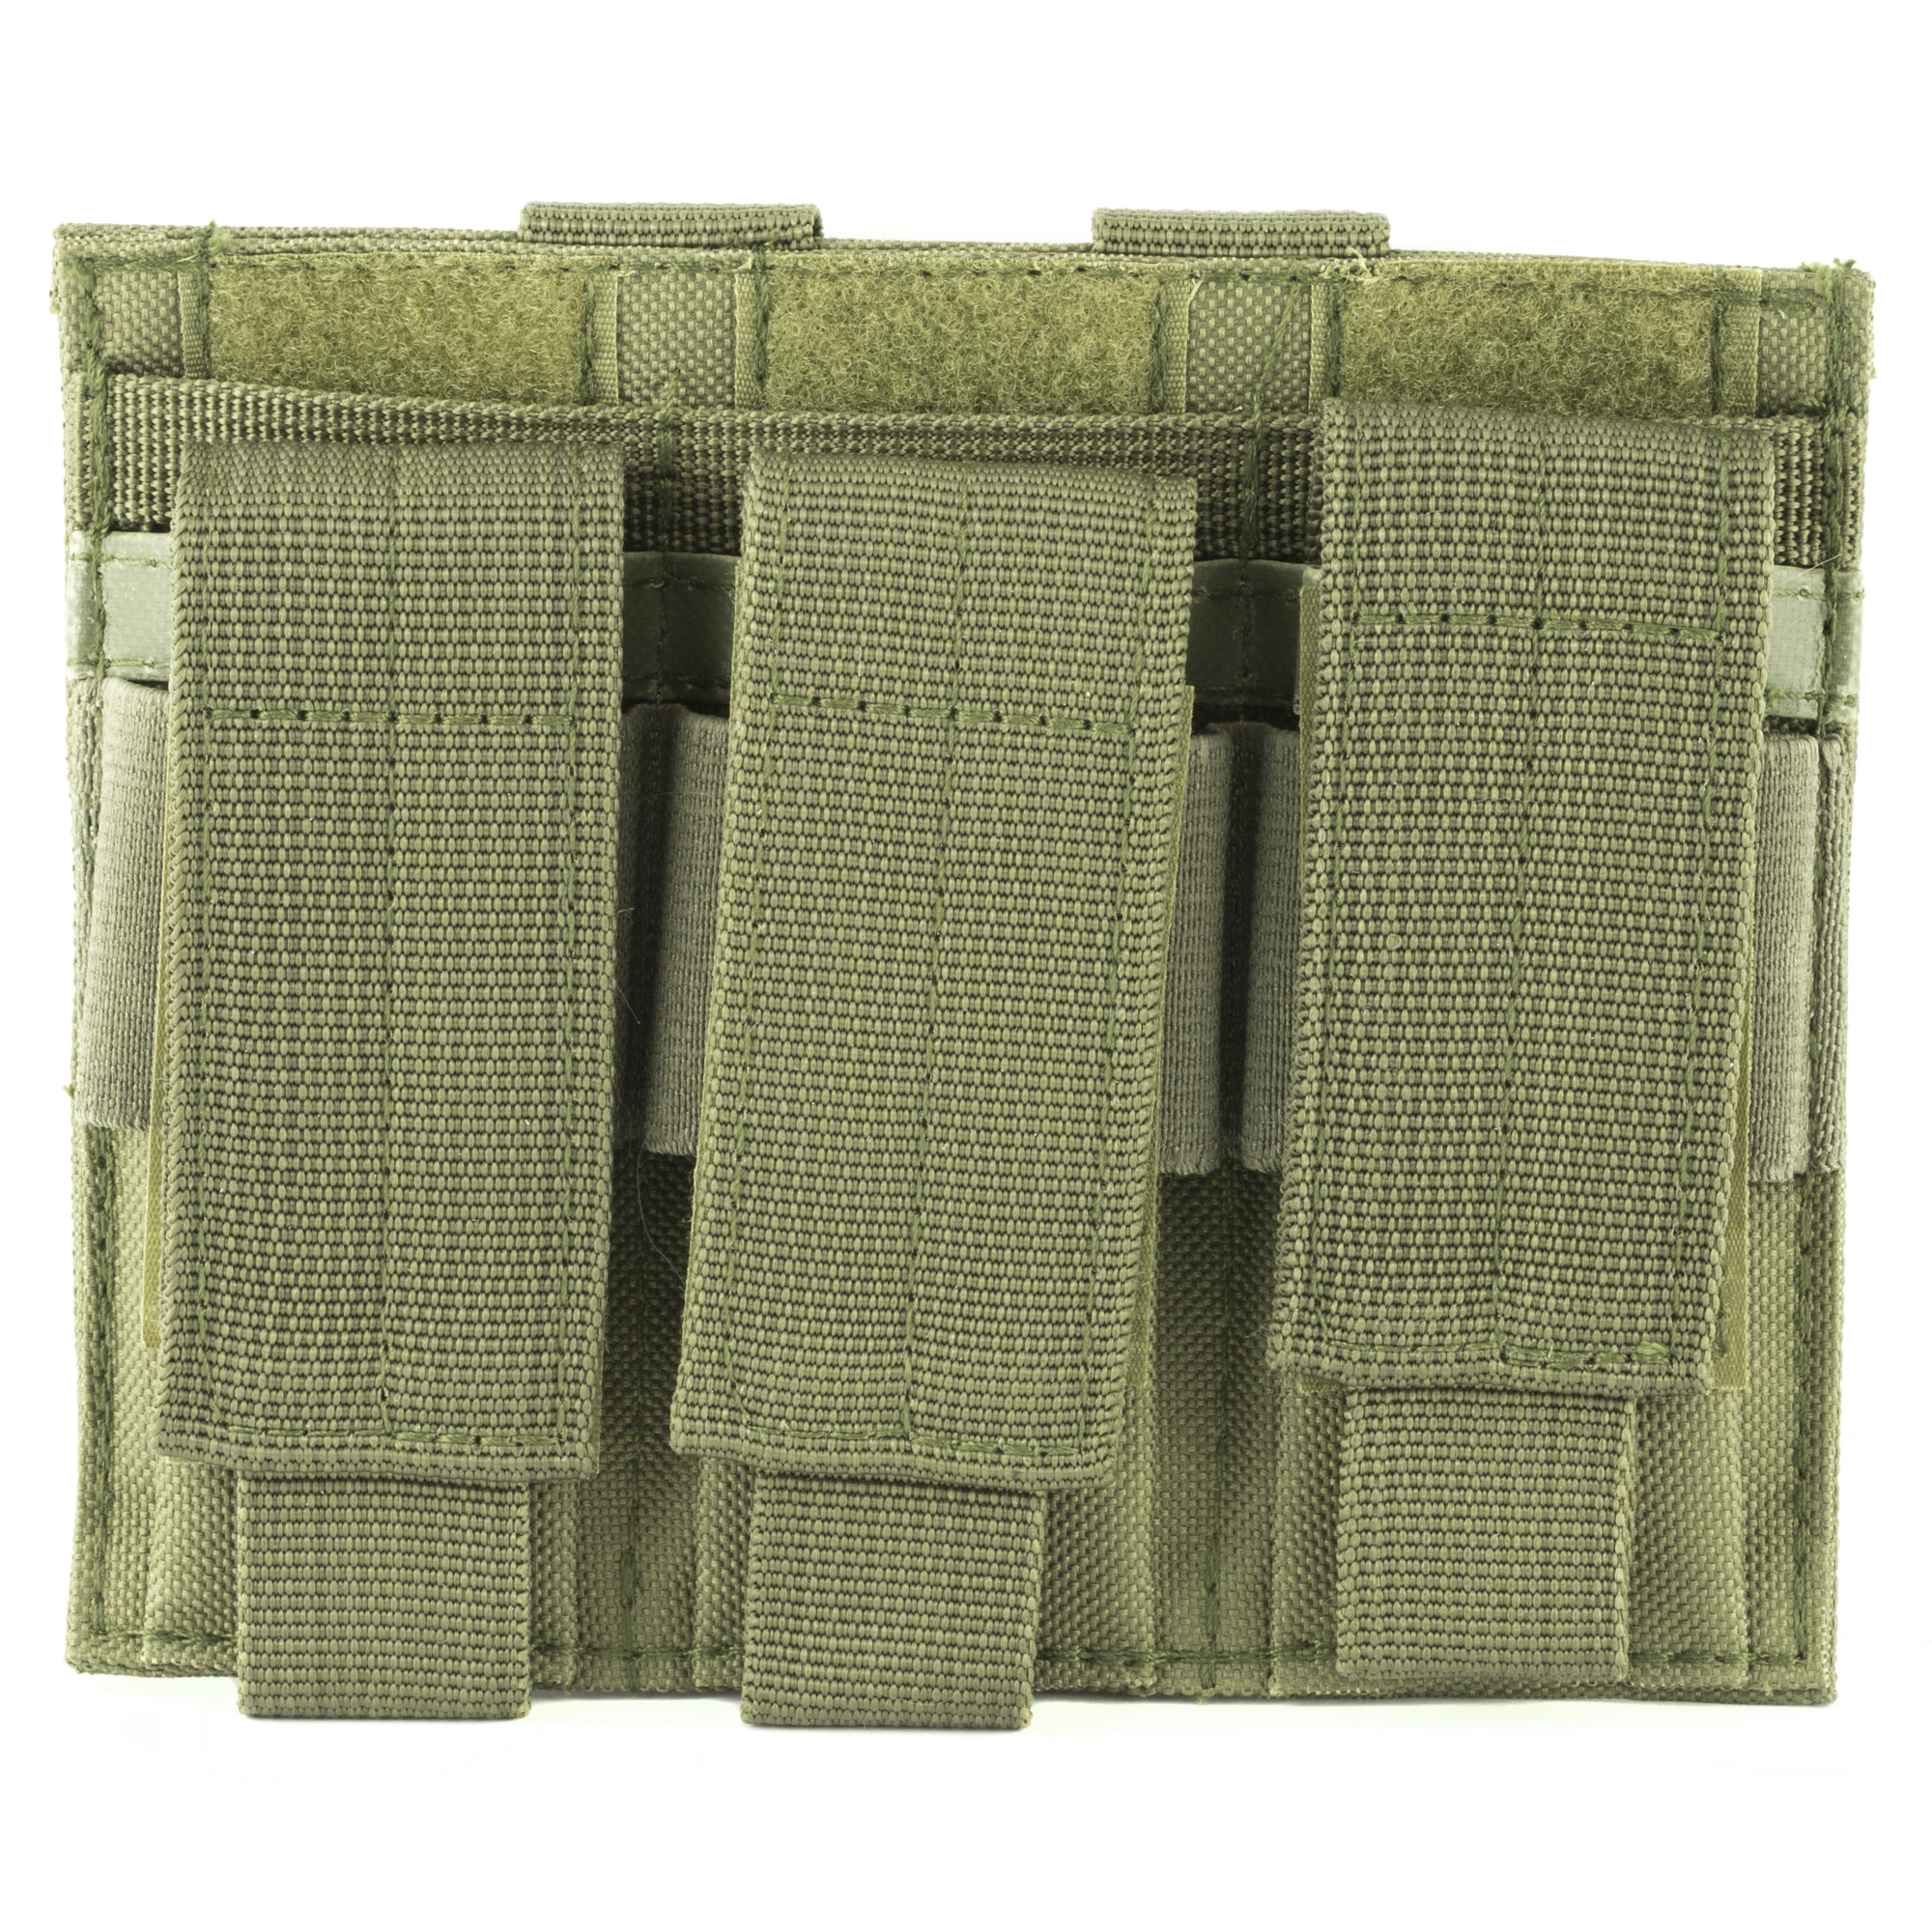 "When you need your spare magazines securely in place with quick access should the need arise"" get the NcSTAR Triple Pistol Mag Pouch. Always have three standard size double stack magazines at the ready for your defensive pistol. It features 2 PALS snap straps and MOLLE webbing on the back for multiple attachment methods anywhere you need it. The Velcro closures are adjustable to the height of your standard capacity magazines and have pull tabs so there no fumbling around to deploy additional ammunition quickly. Constructed with durable heavy duty fabric and featuring drainage grommets for adverse weather"" this mag pouch will last a lifetime. Keep your spare ammo right at hand where you need it"" when you need it with the NcSTAR Triple Pistol Mag Pouch."